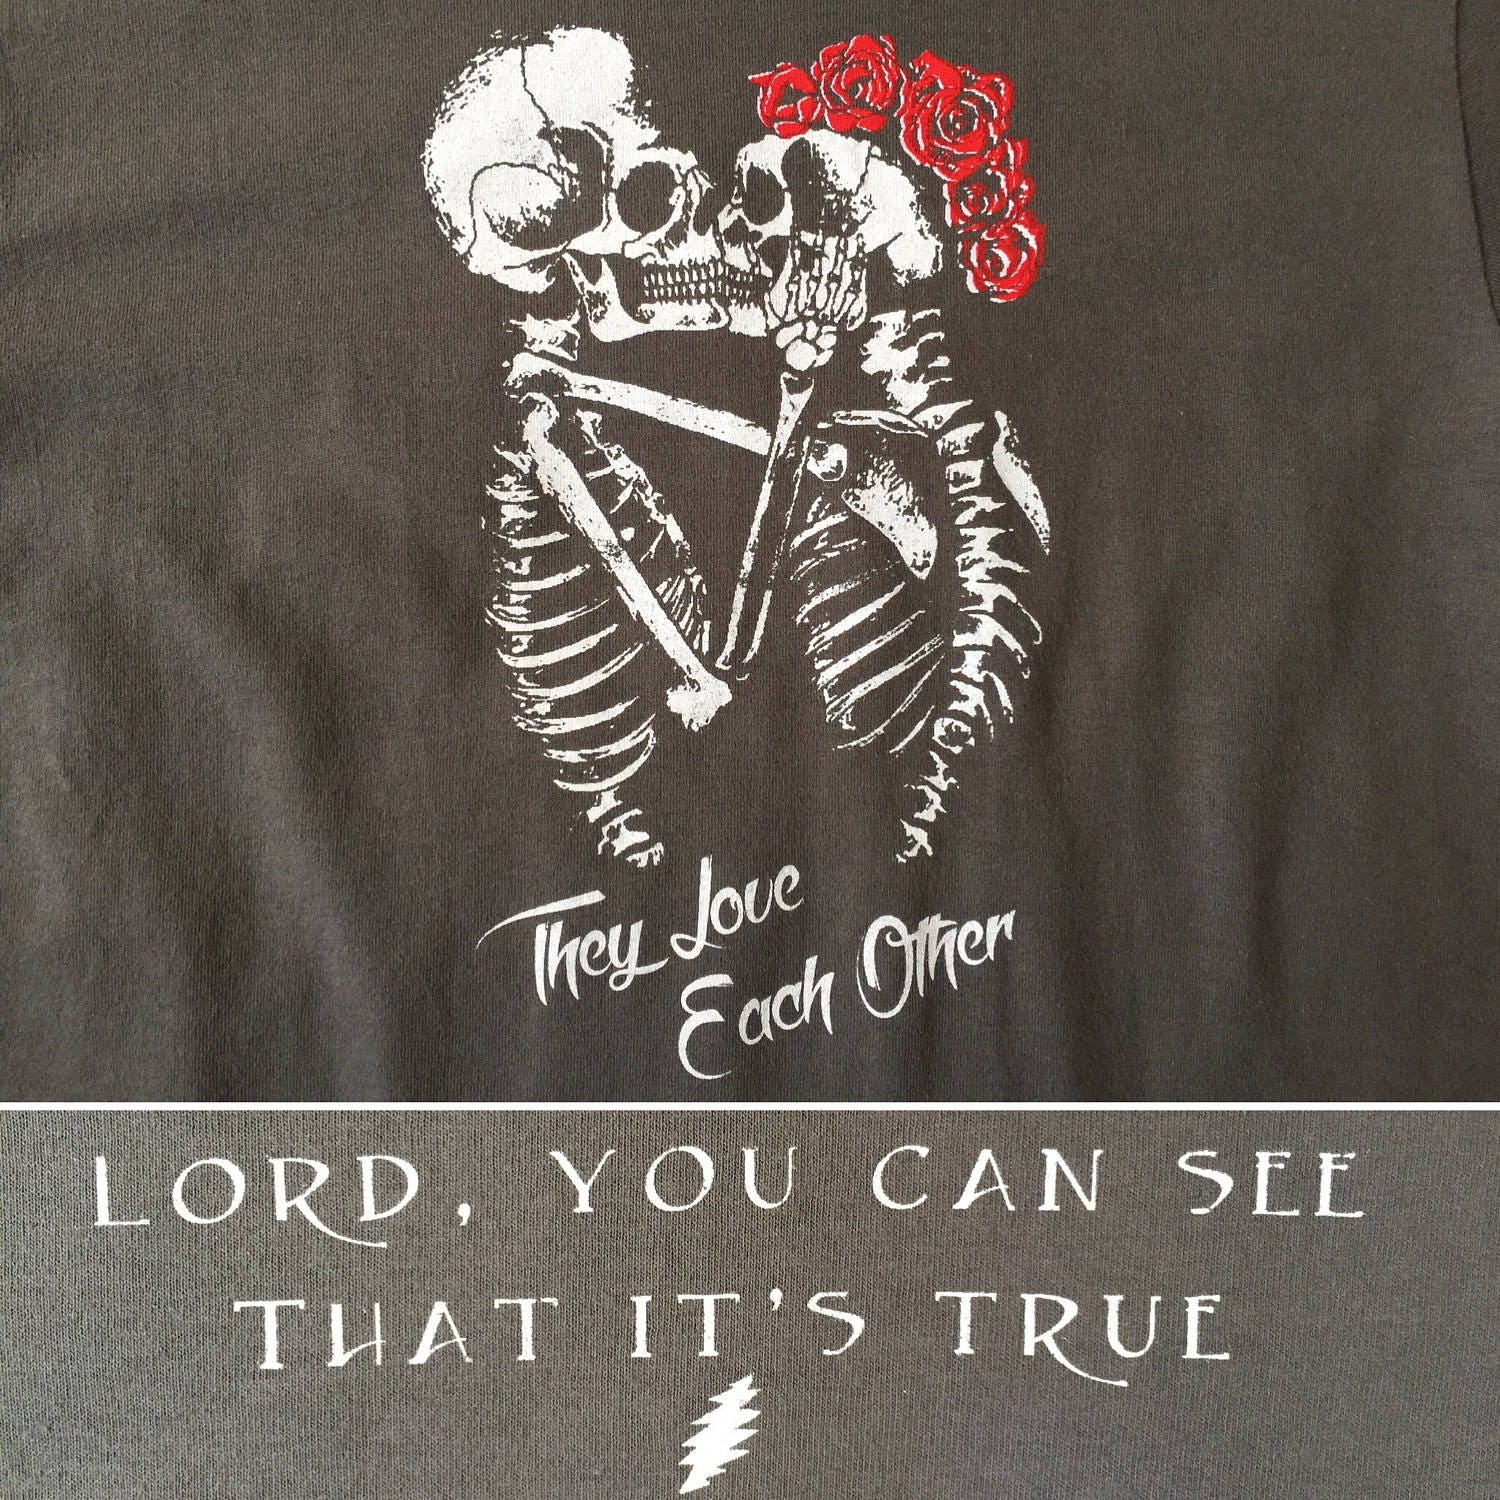 They Love Each Other: Grateful Dead Inspired Shirt-They Love Each Other TLEO Lot